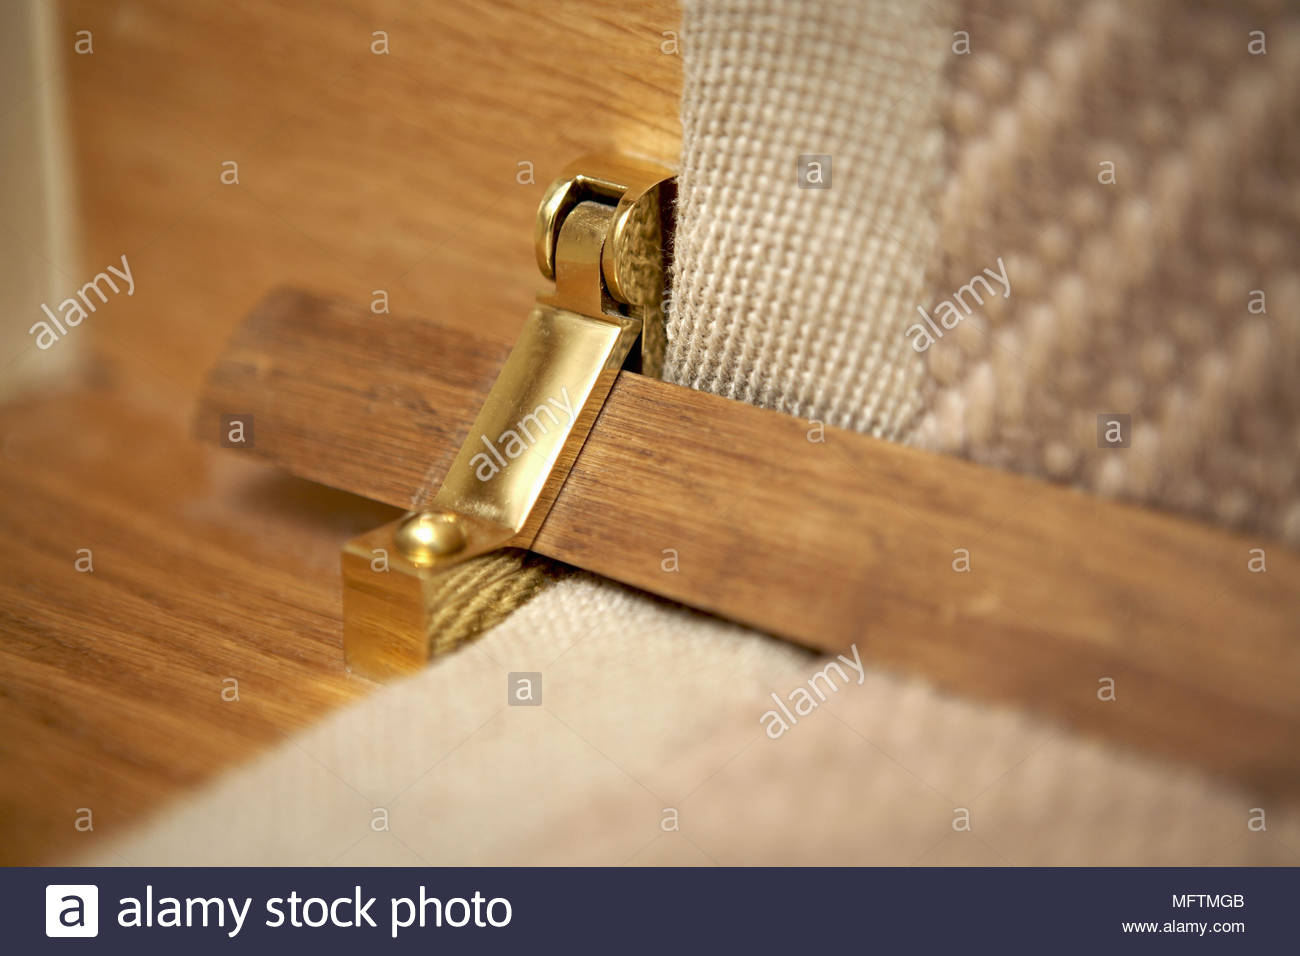 Close Up Of Traditional Wooden Stair Rod Kept In Place With Brass Clip